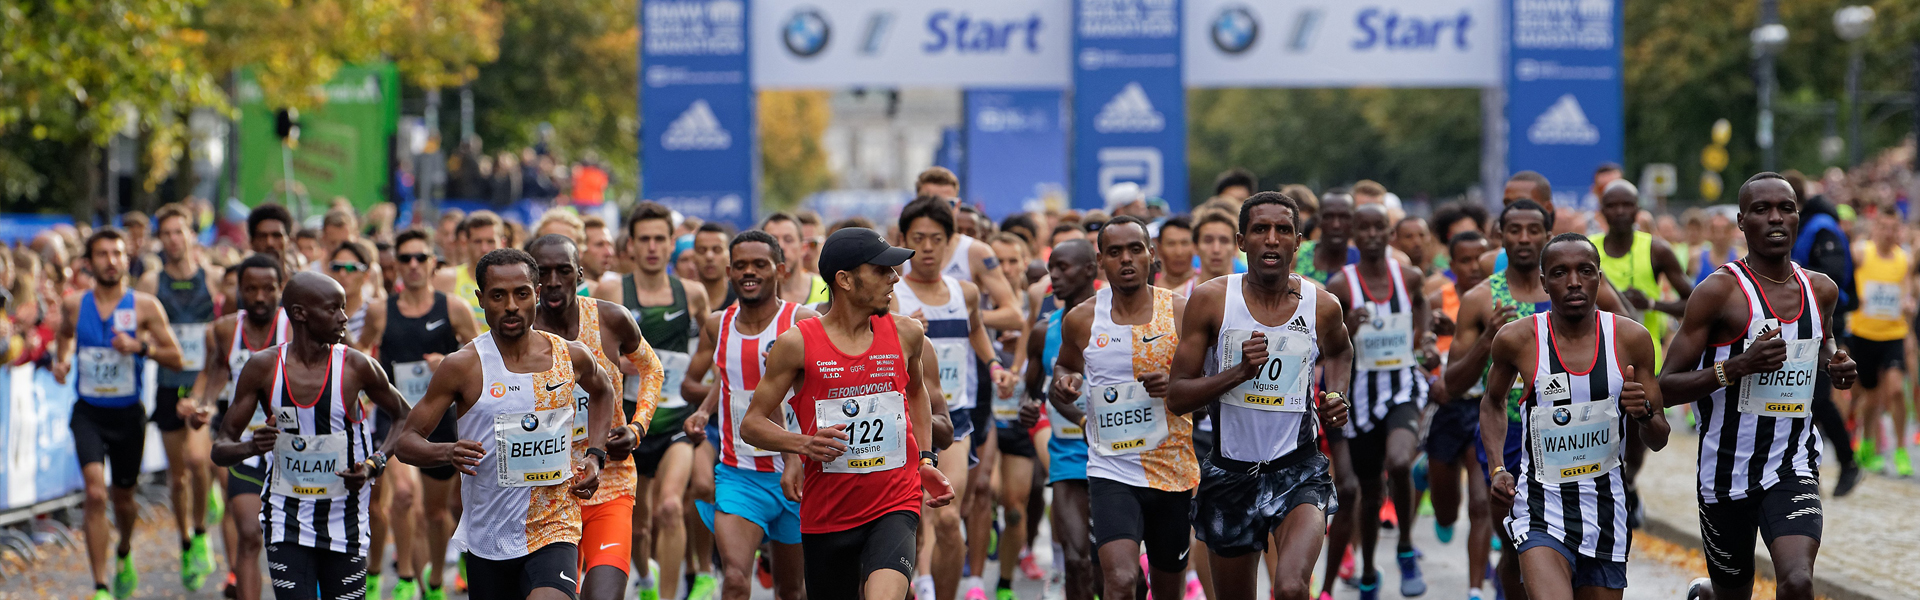 Acea Run Rome The Marathon rafforza la partnership con BMW Berlin Marathon